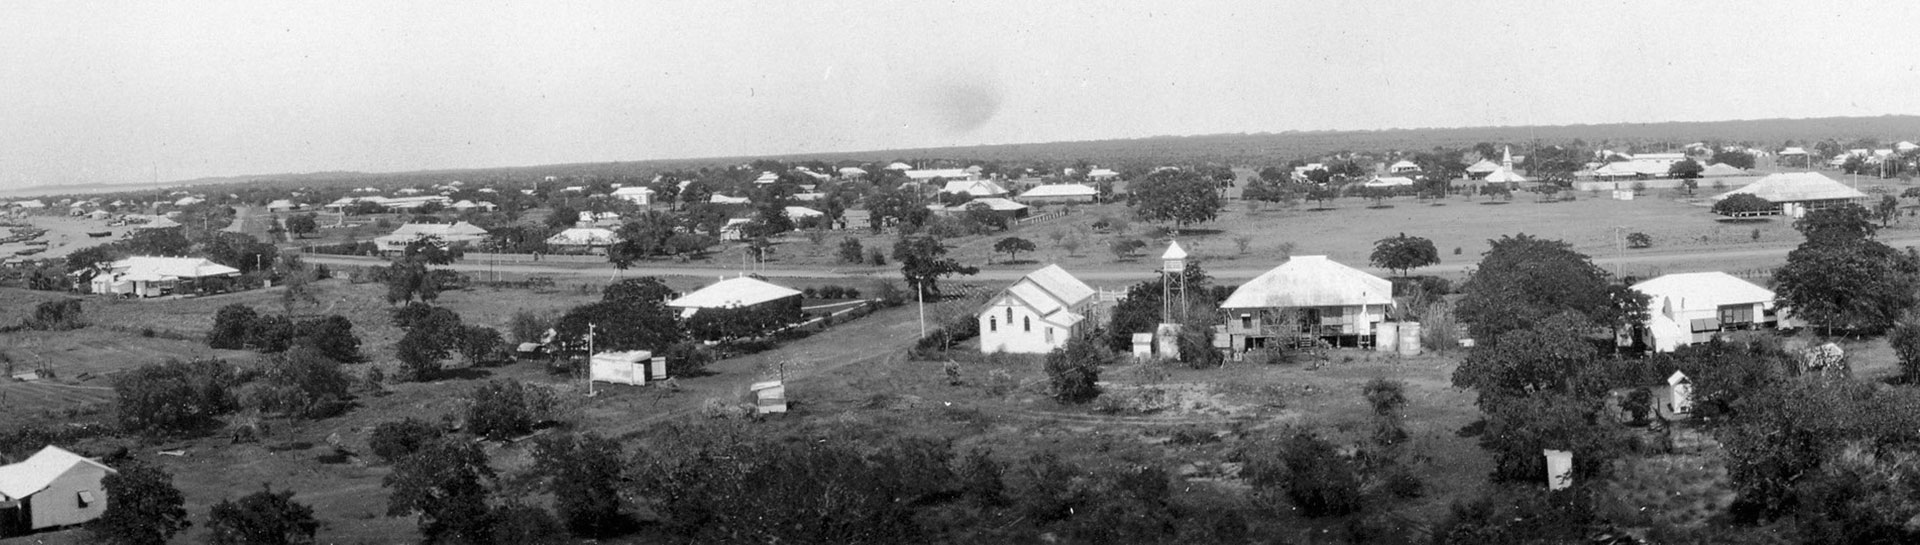 View from Kennedy Hill, Broome